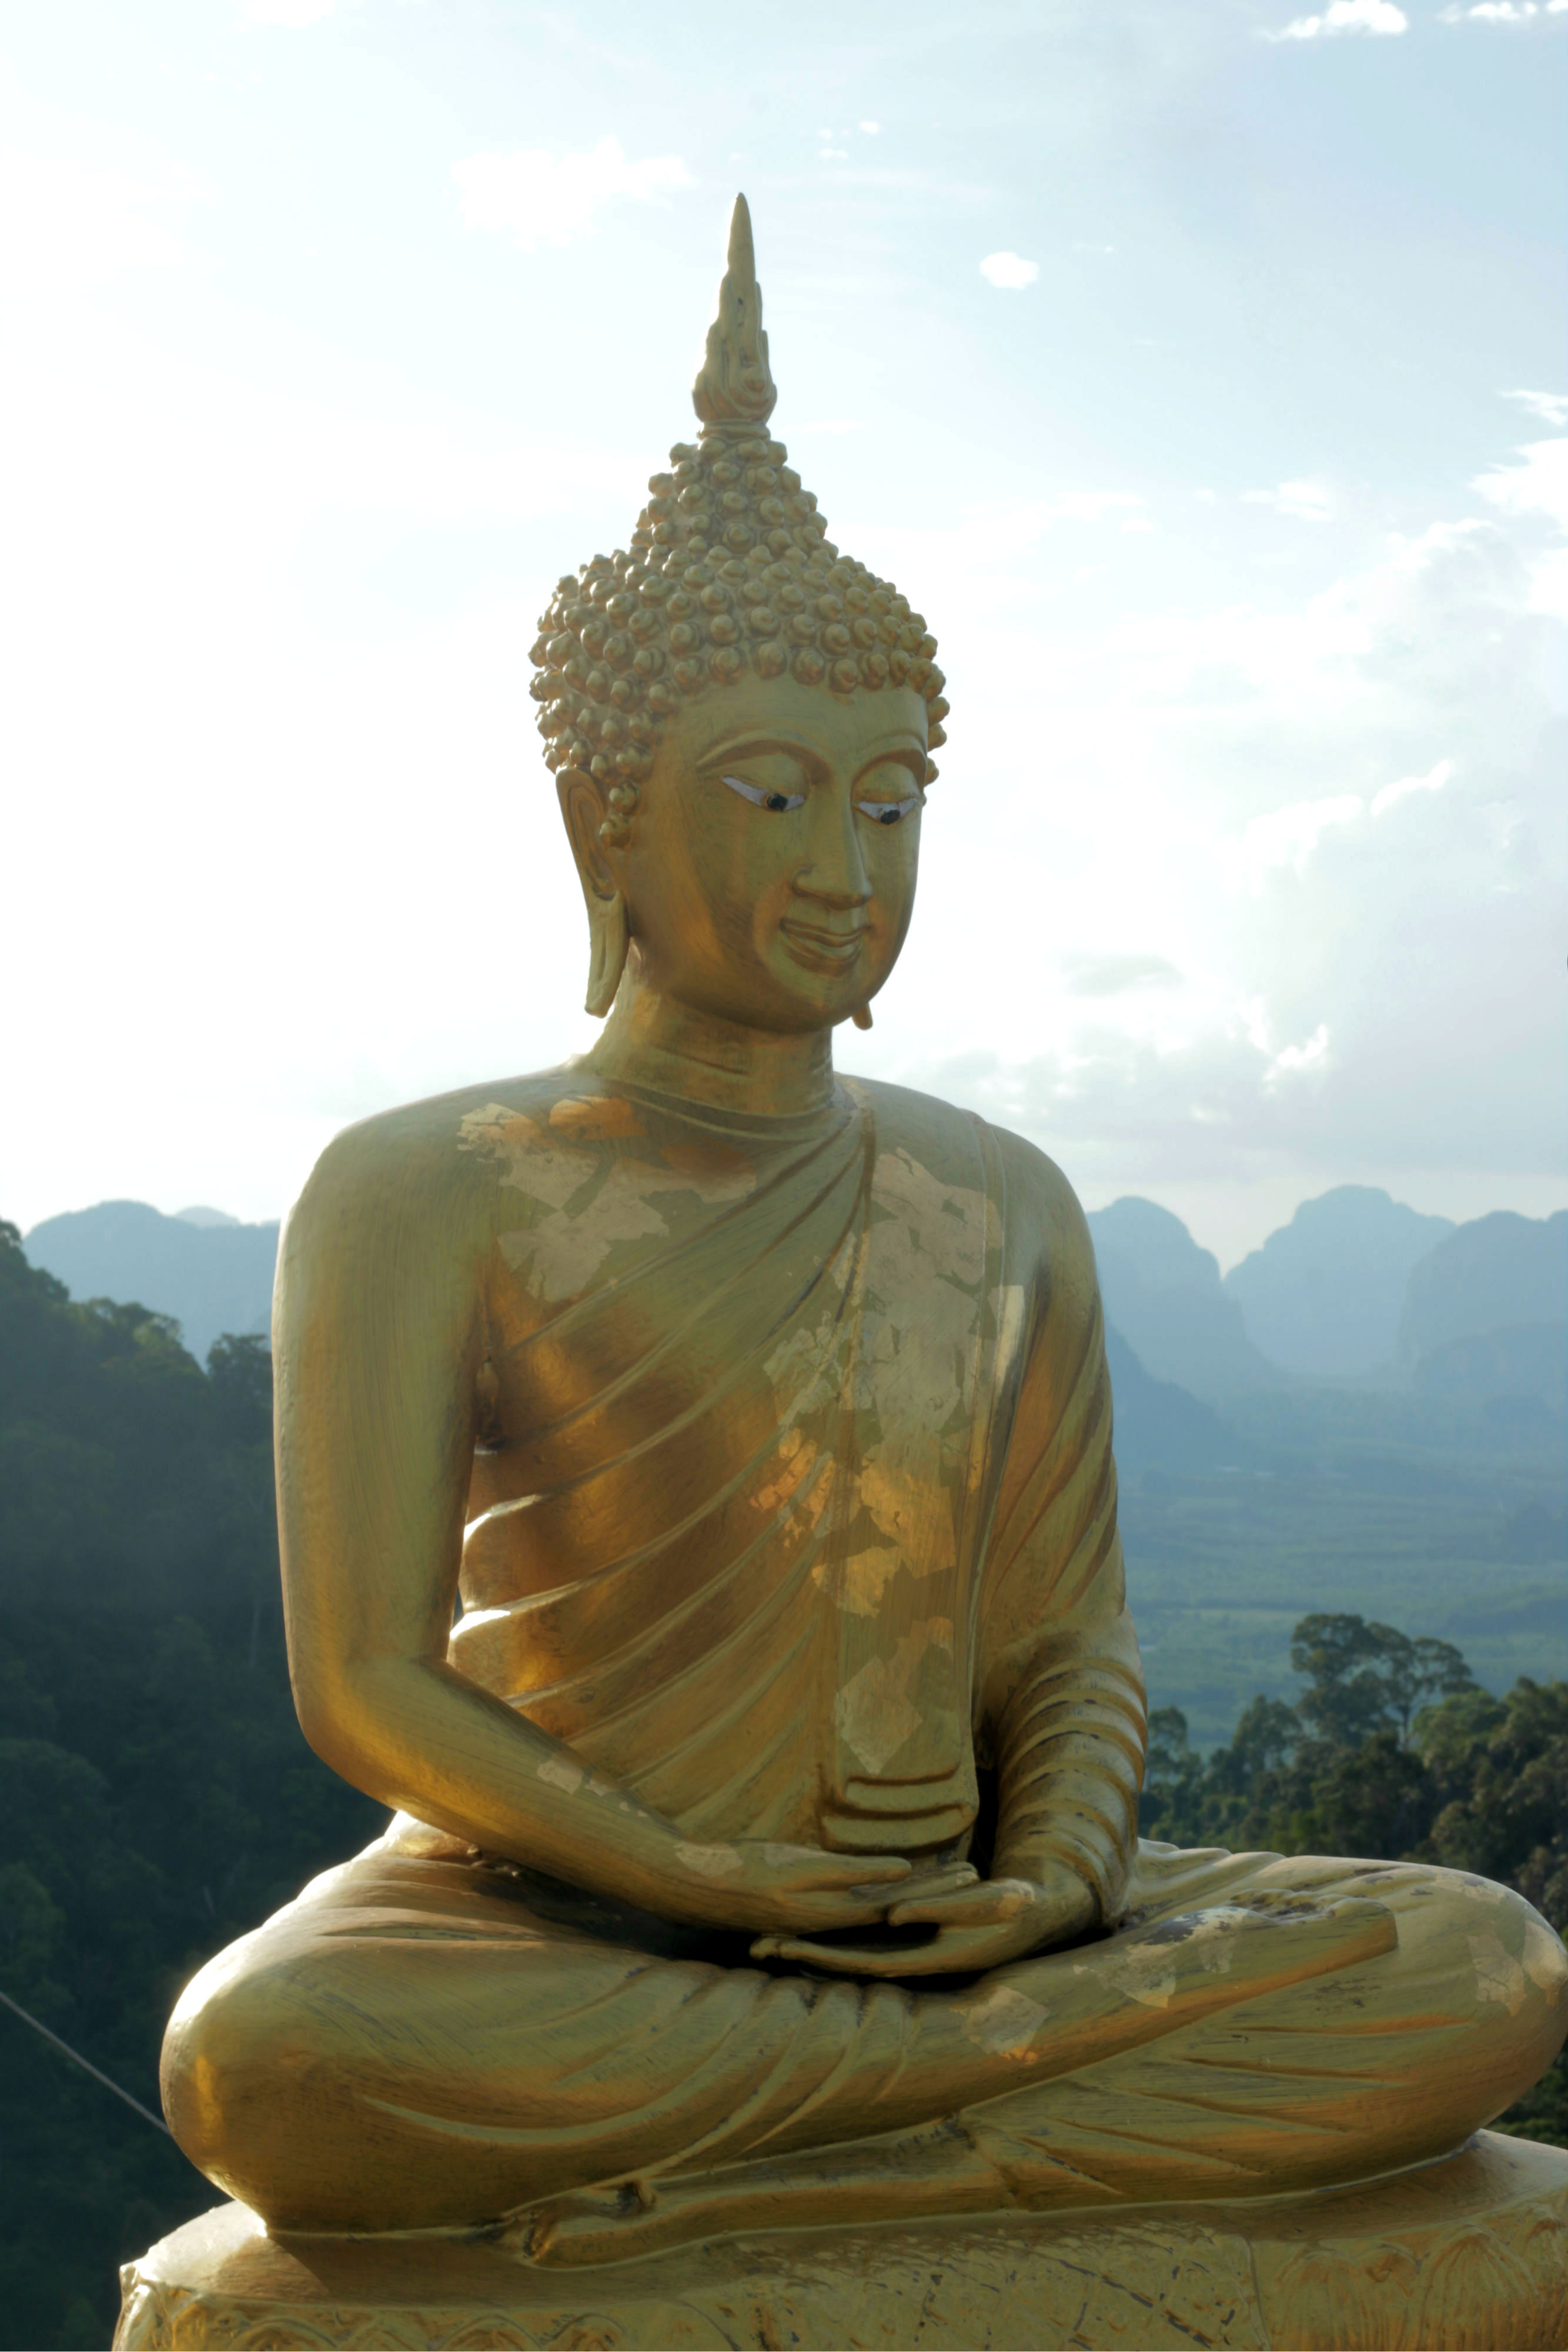 Best 1237 Wiccan Images On Pinterest: 1237 Steps To Spirituality In Krabi